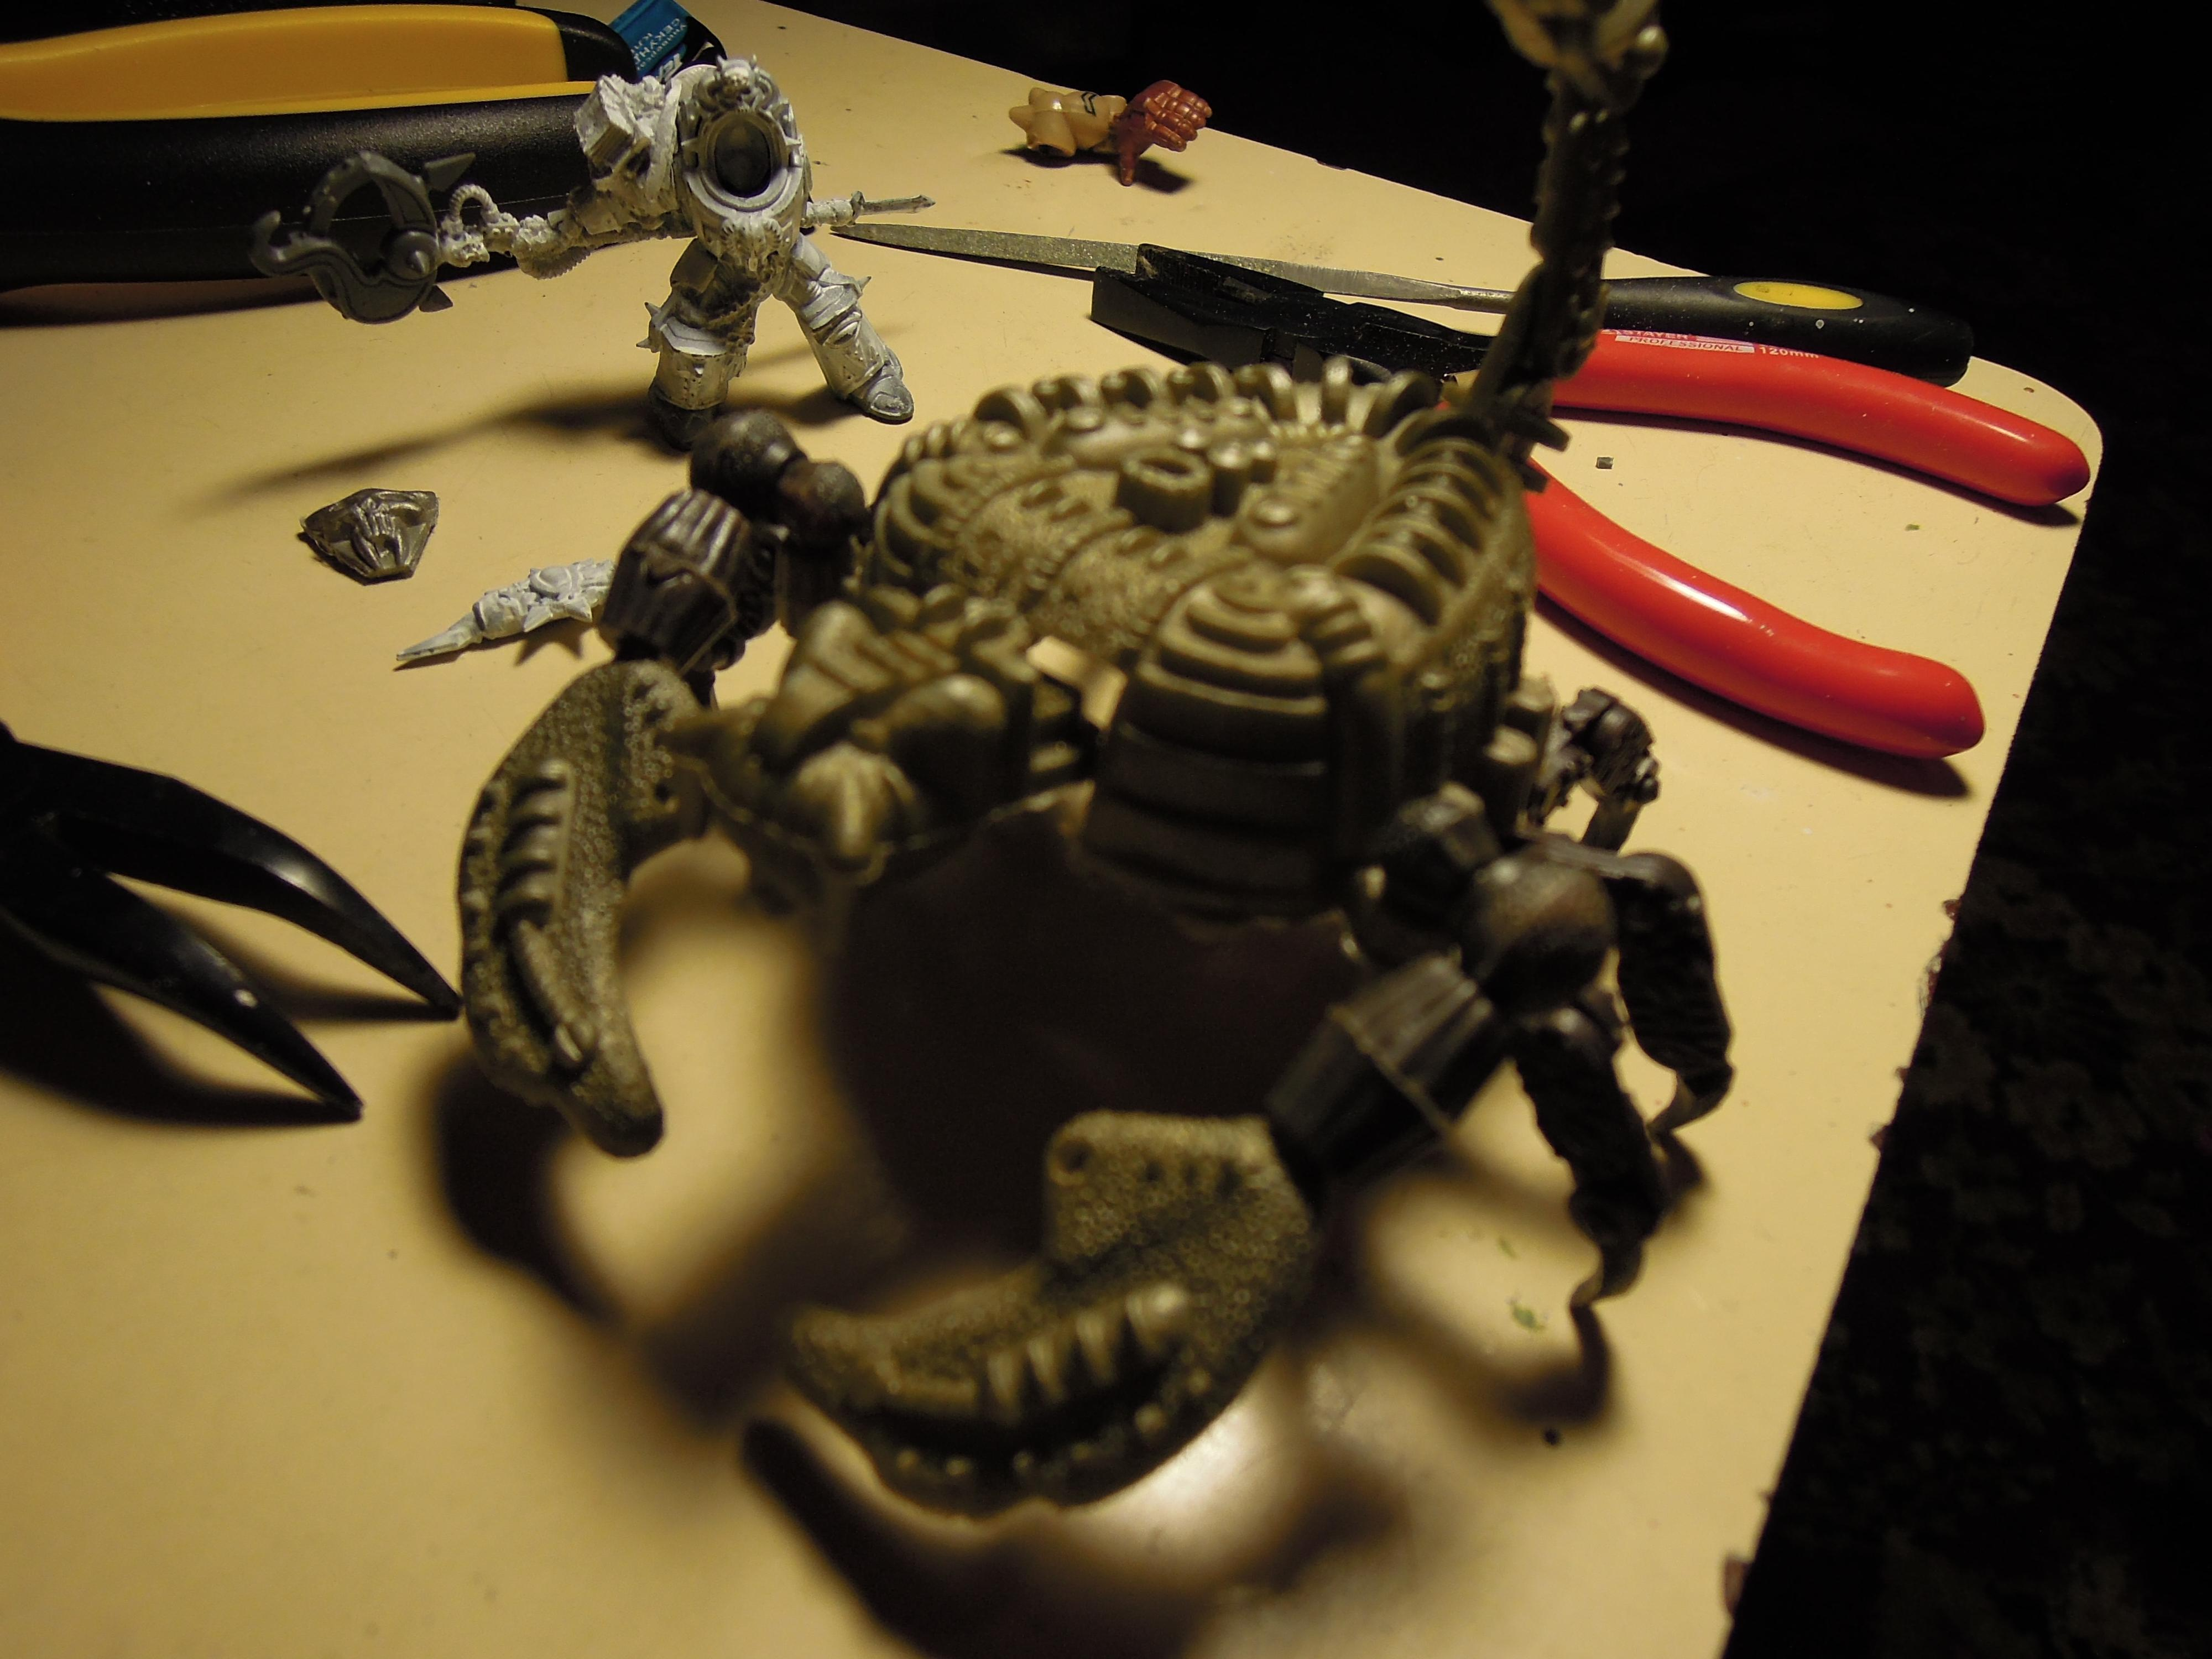 Armored Vehicle, Blood Pact, Blurred Photo, Chaos, Claws, Conversion, Daemon Engine, Heavy Support, Scorpion, Scratch Build, Tank, Technolog, Tehnolog, Walker, Warhammer 40,000, Work In Progress